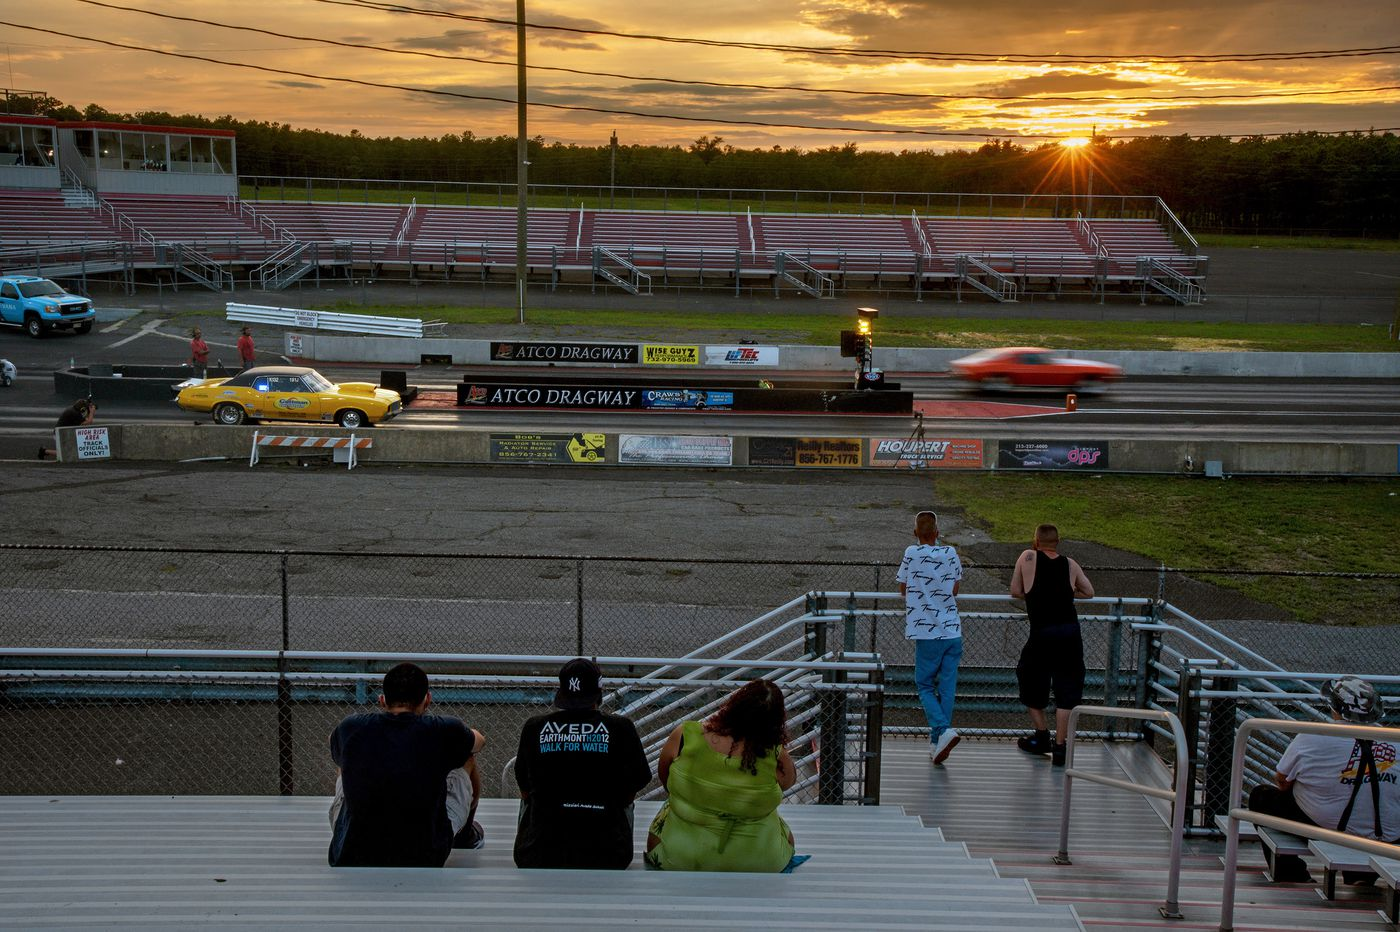 Racing fans fear South Jersey's Atco Dragway will close to make way for an auto auction